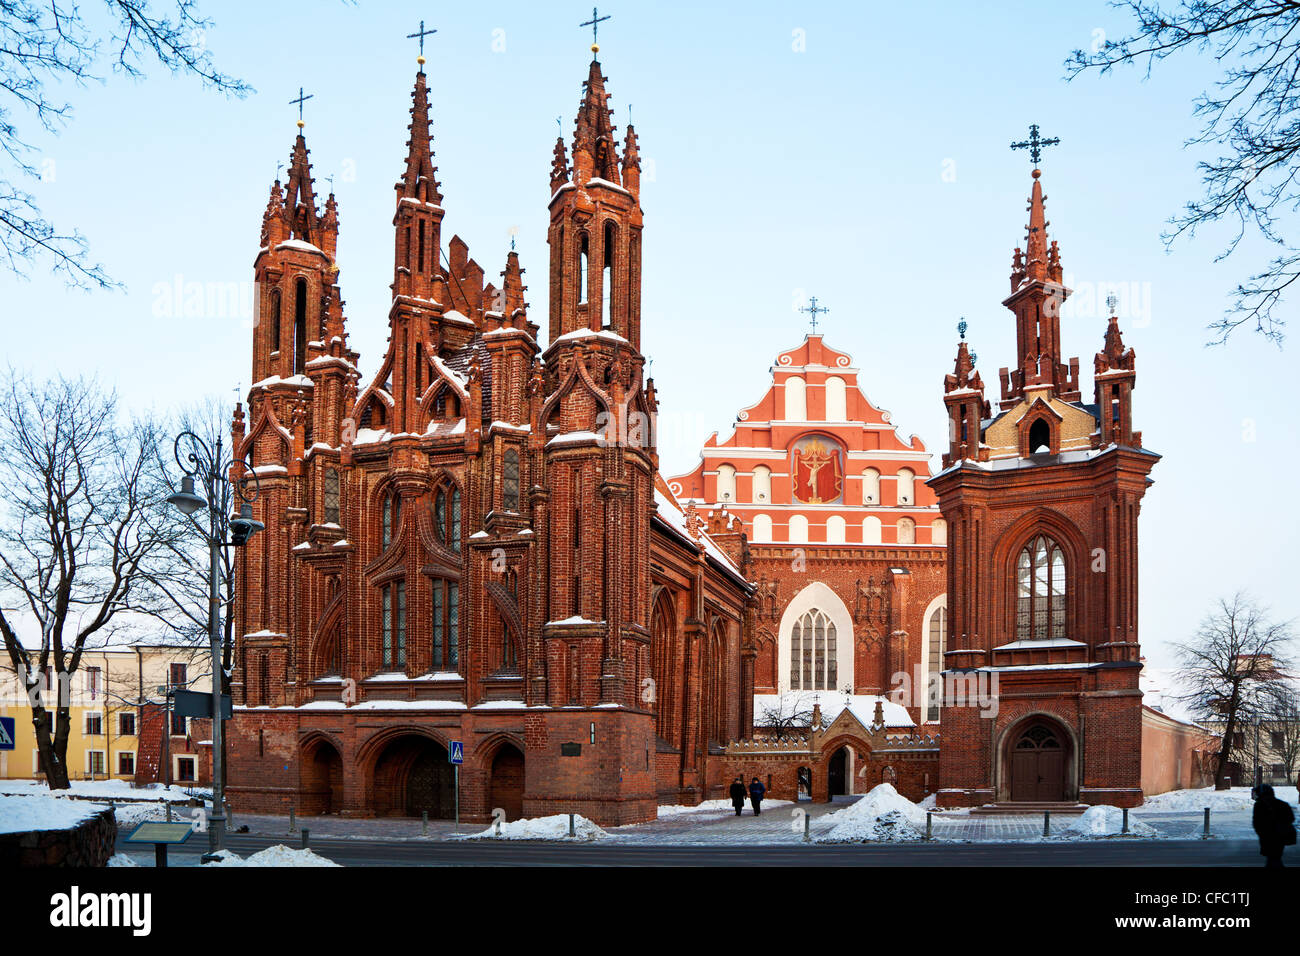 The Church of St. Anne's and the Bernardine Church, Vilnius, Lithuania - Stock Image